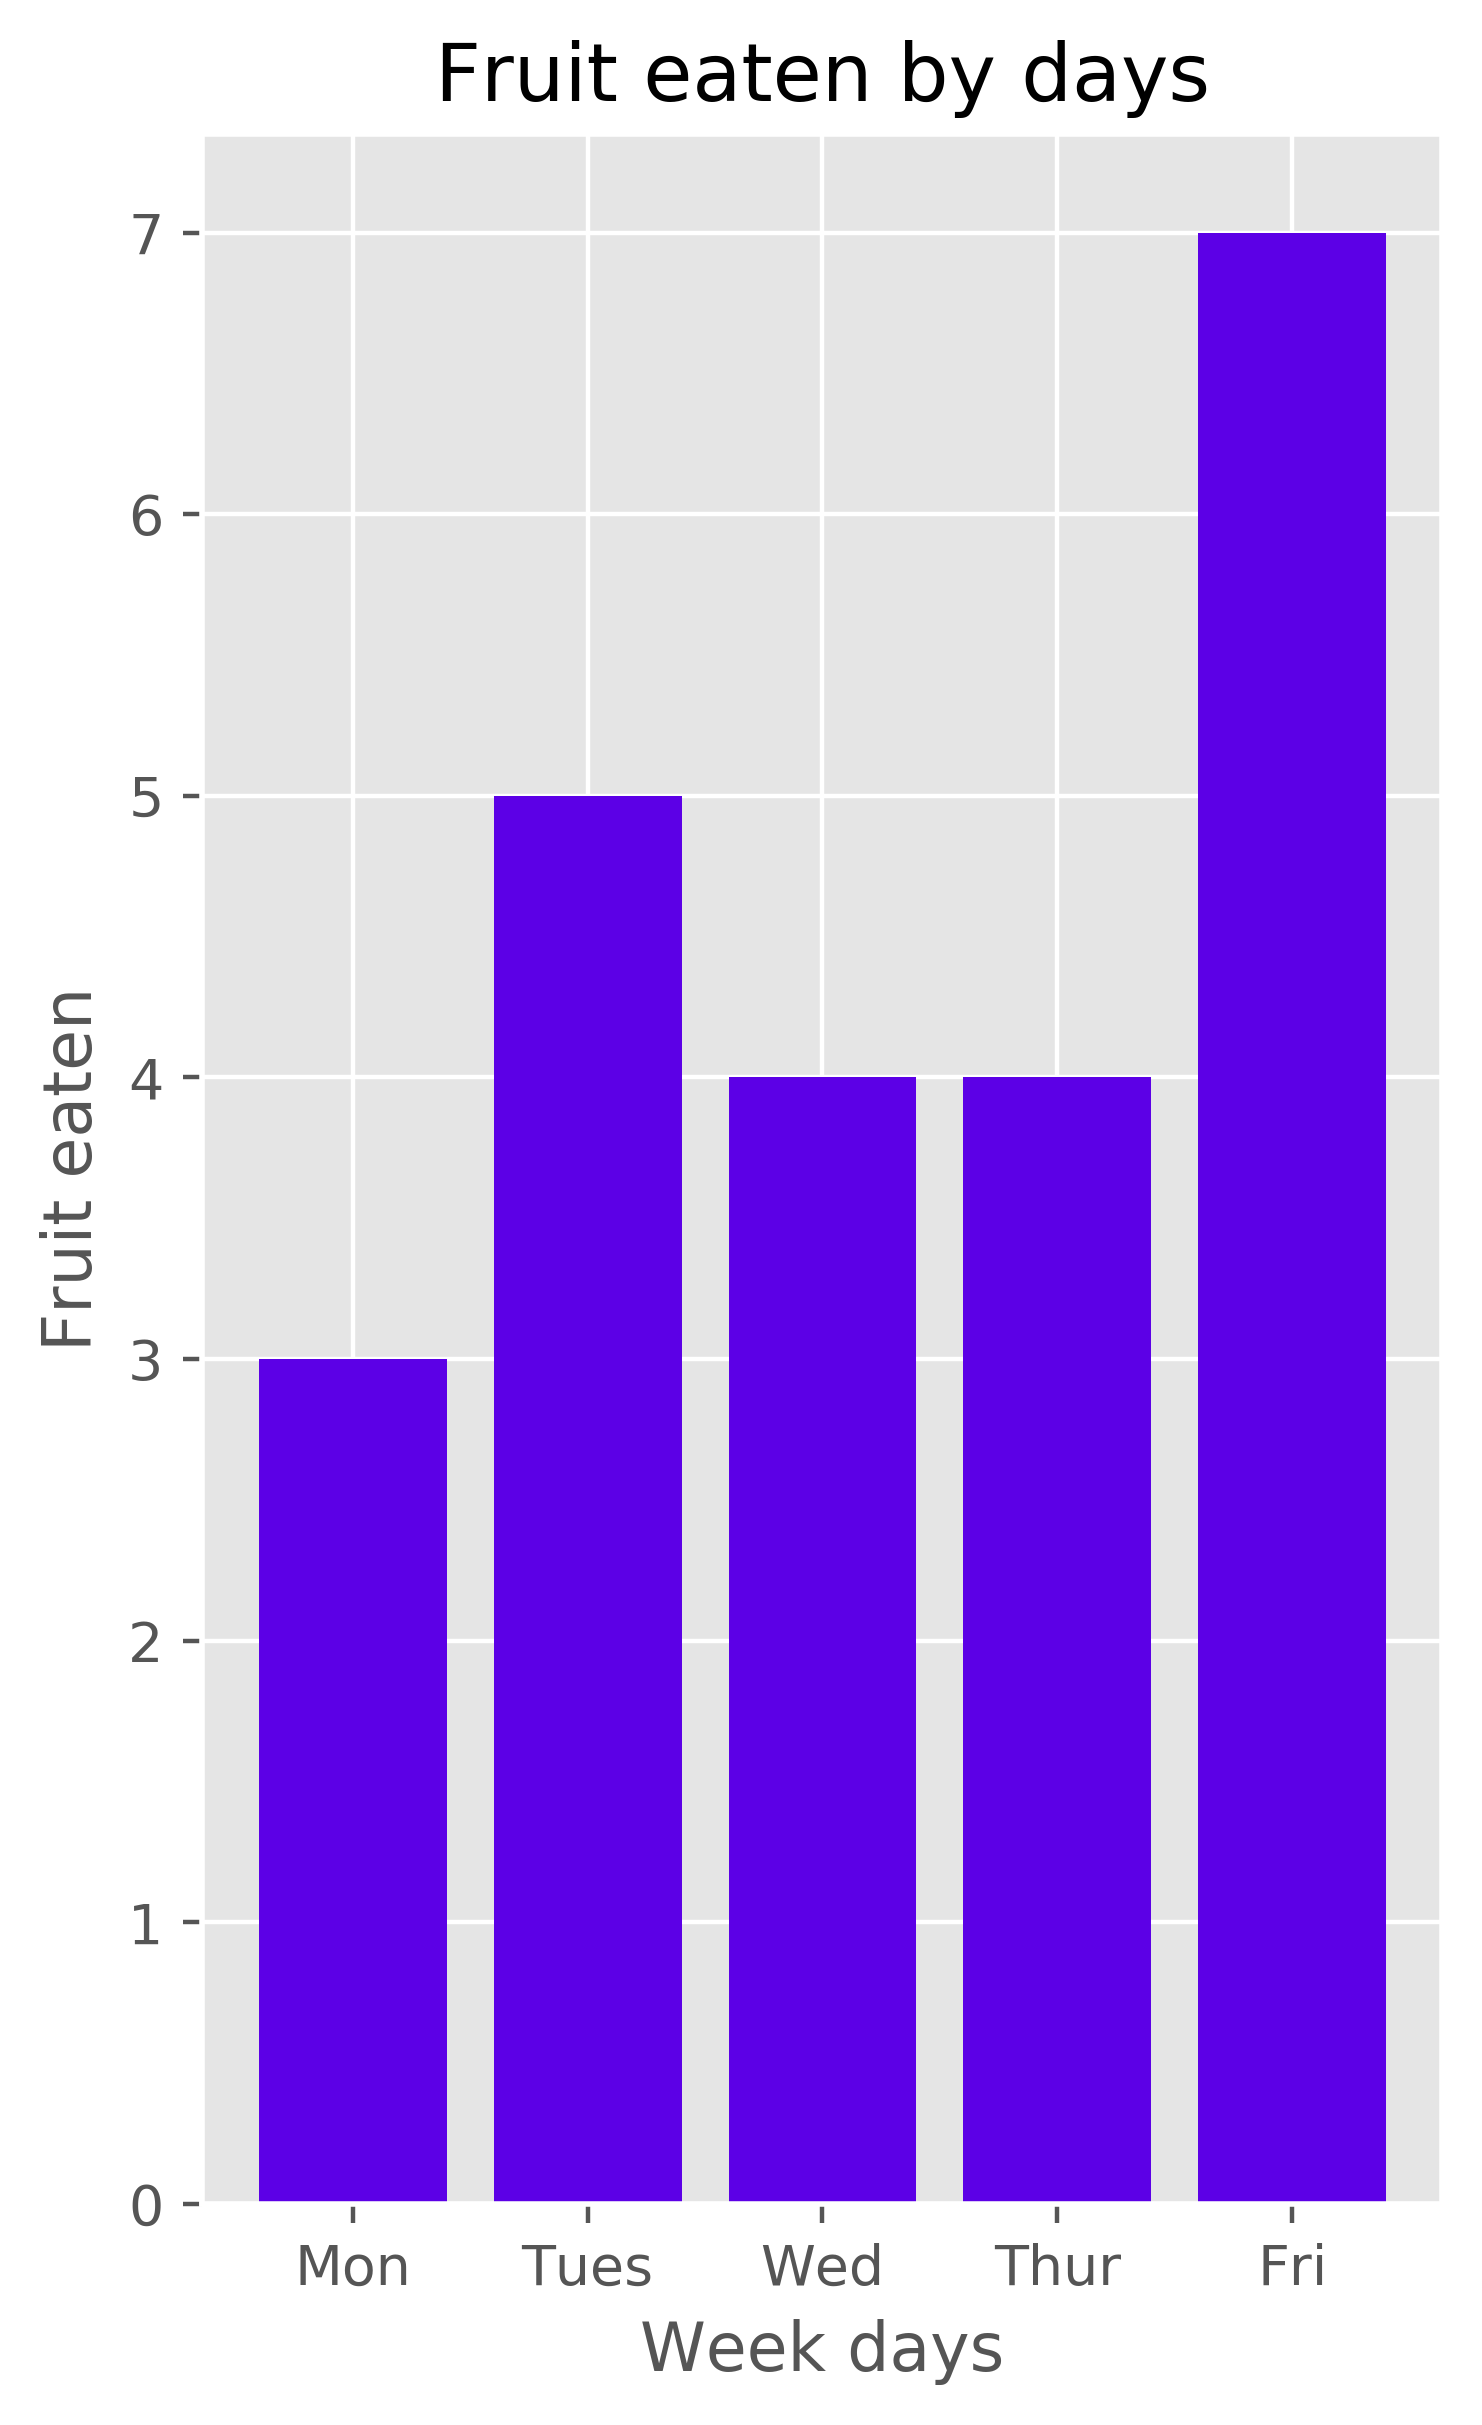 Pyplot bar chart created in Clojure